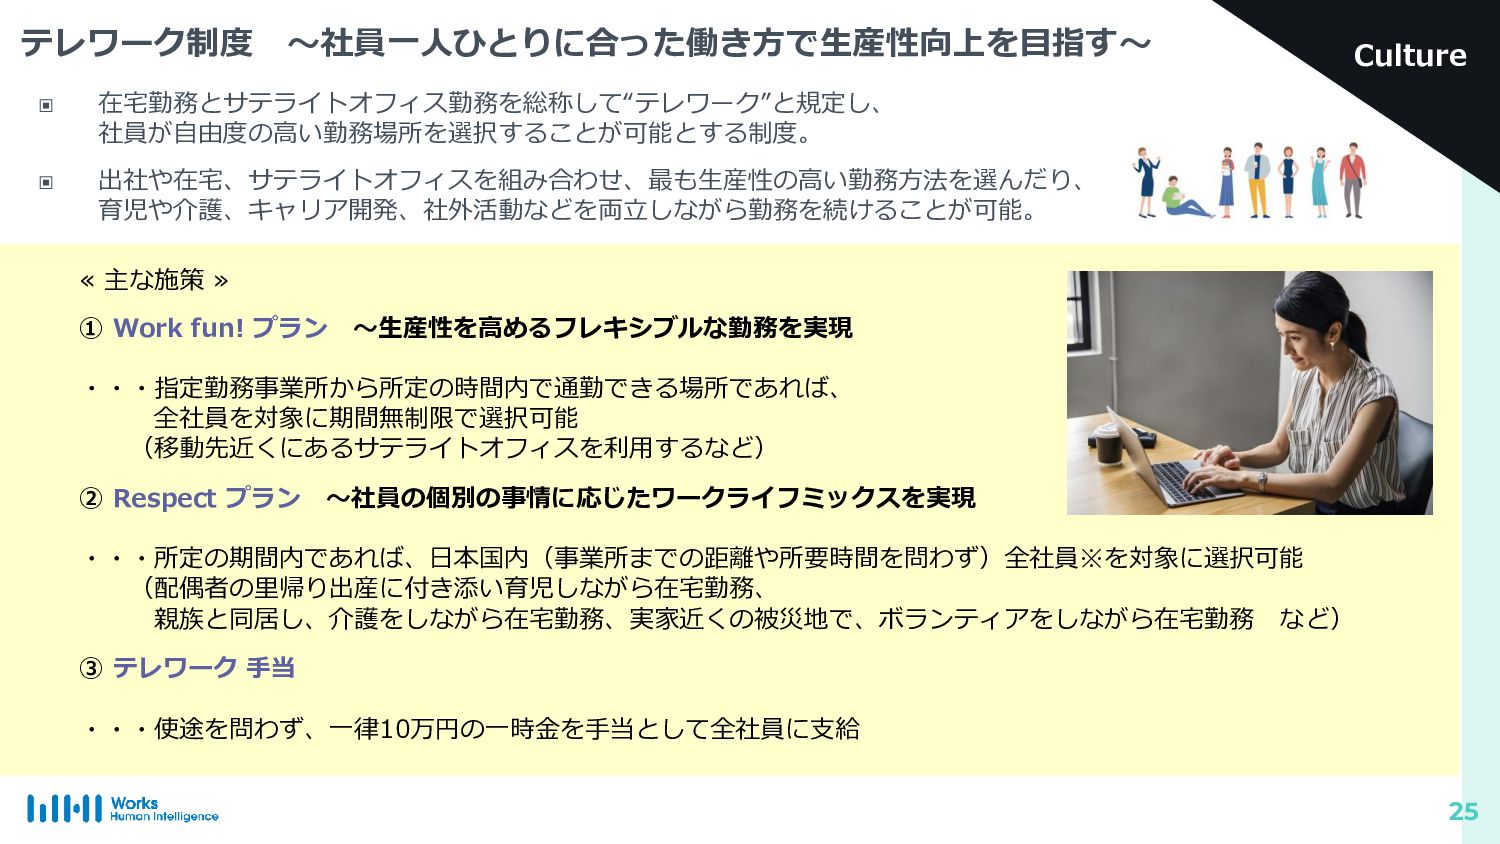 © 2020 Works Human Intelligence Co., Ltd. Stric...